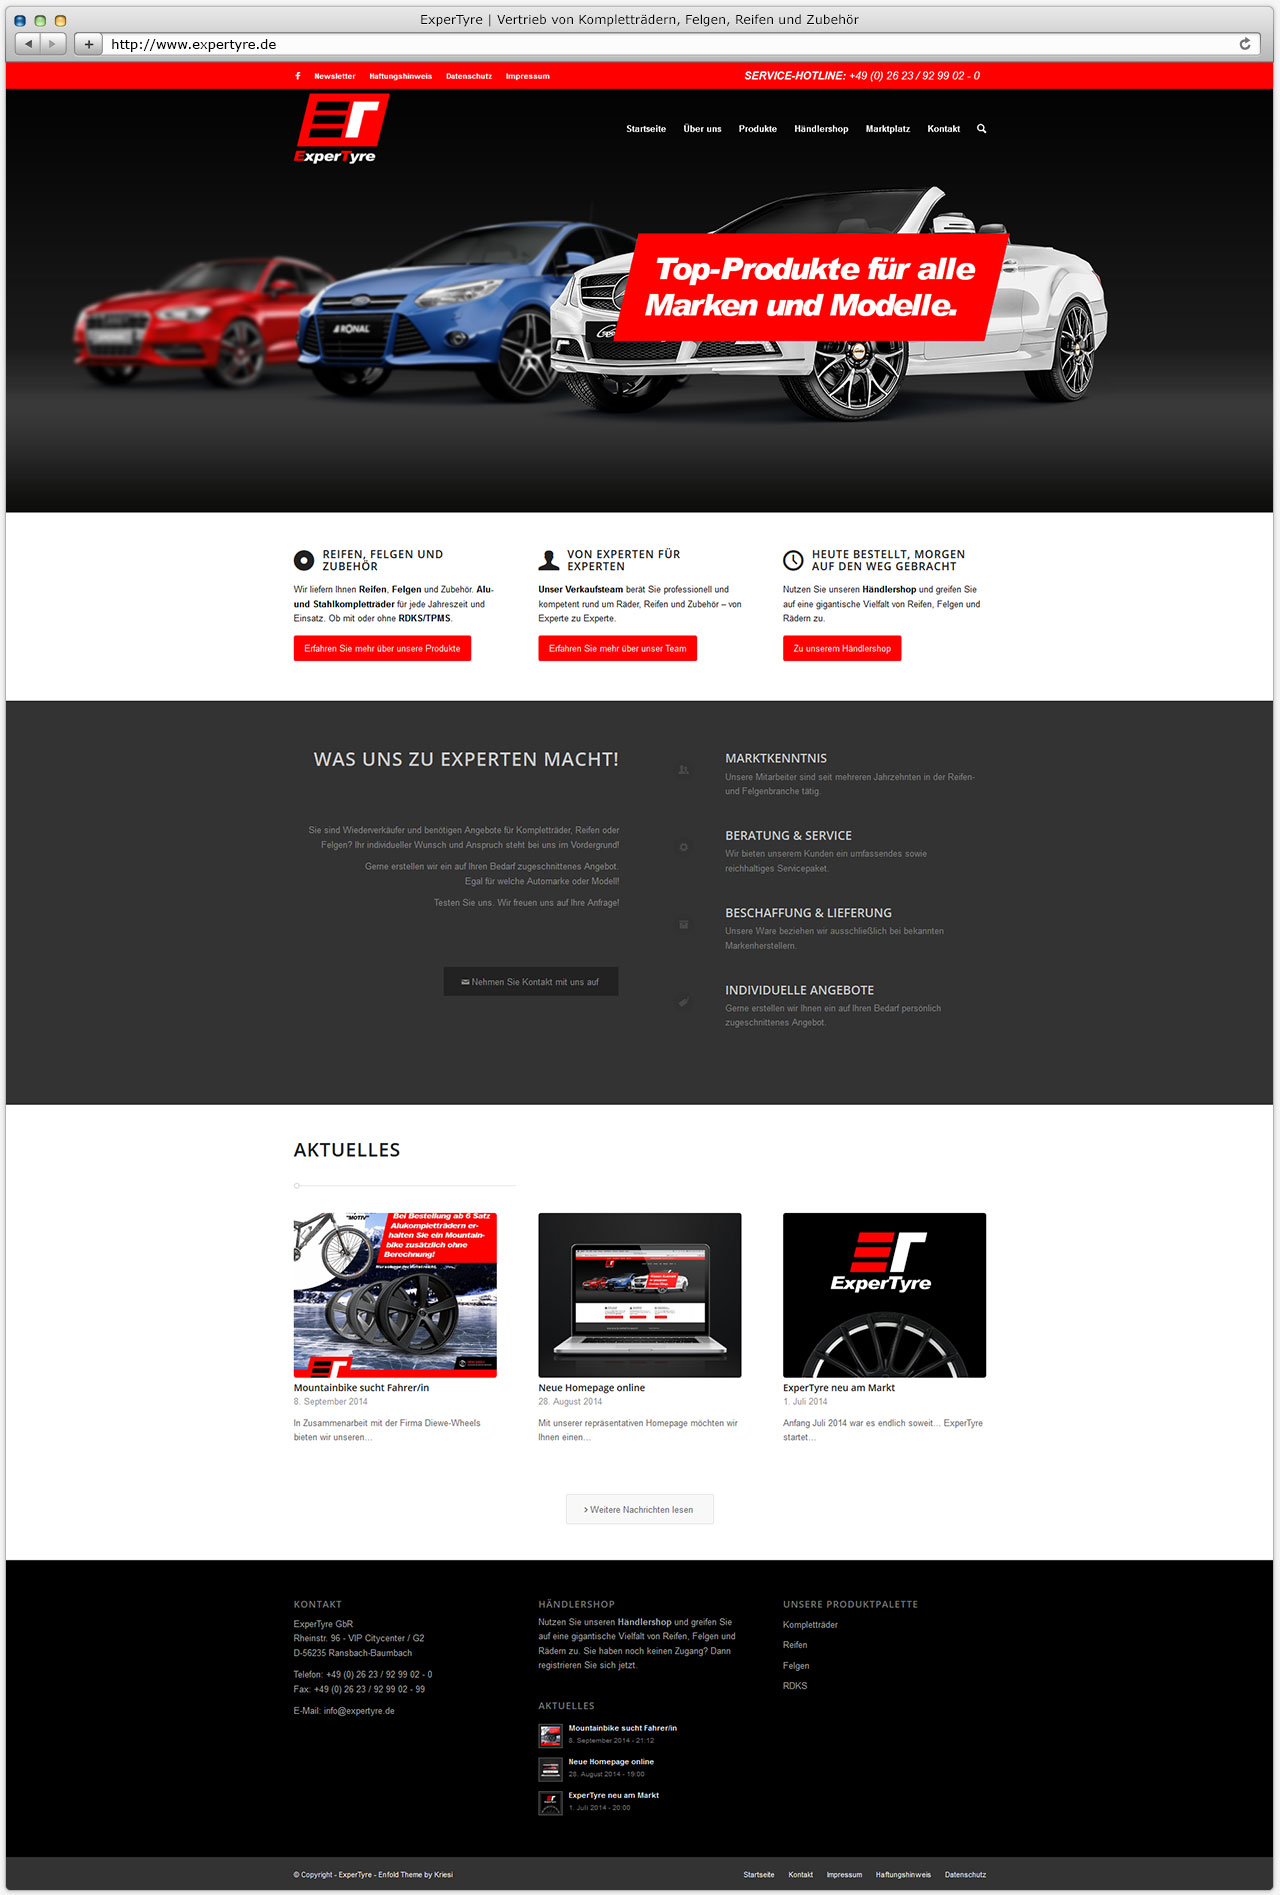 expertyre_website_home